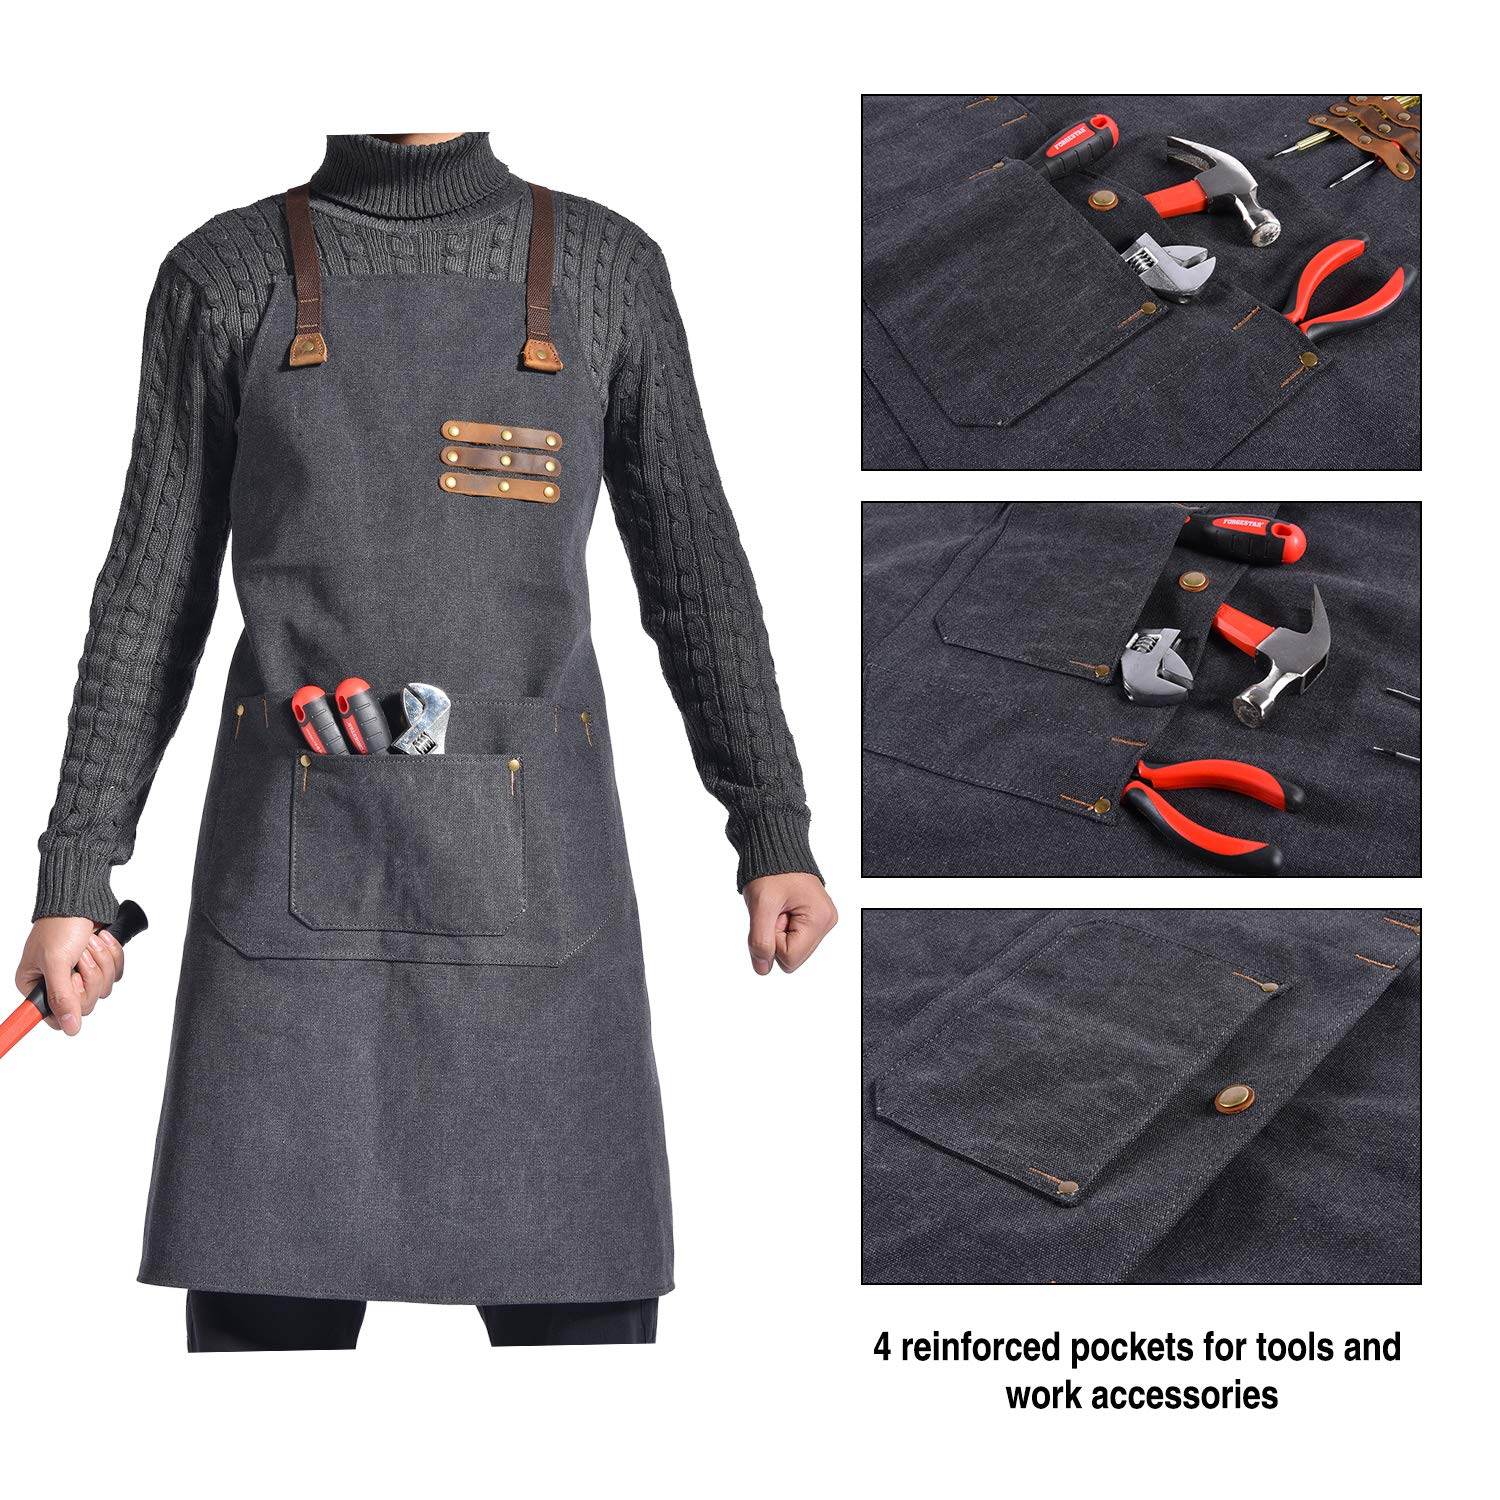 Canvas Shop Apron for Men & Women  Heavy Duty Work Apron with Pocket & Cross-Back Straps   Adjustable Tool Apron M to XXL(Grey) by ruizhixuan (Image #3)